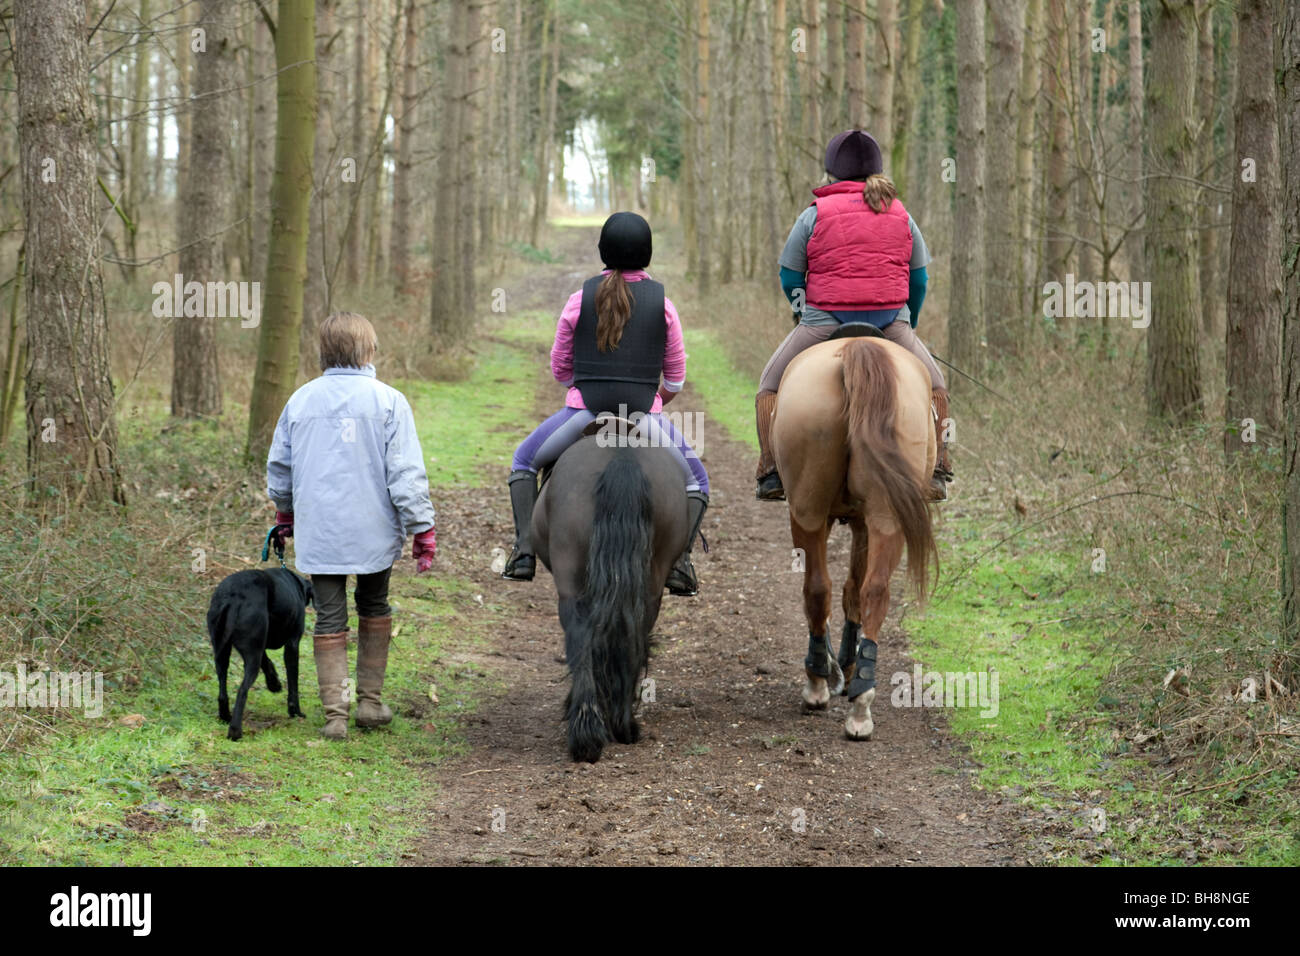 Horse riders and woman walking the dog, rear view, Thetford Forest, Norfolk, UK - Stock Image